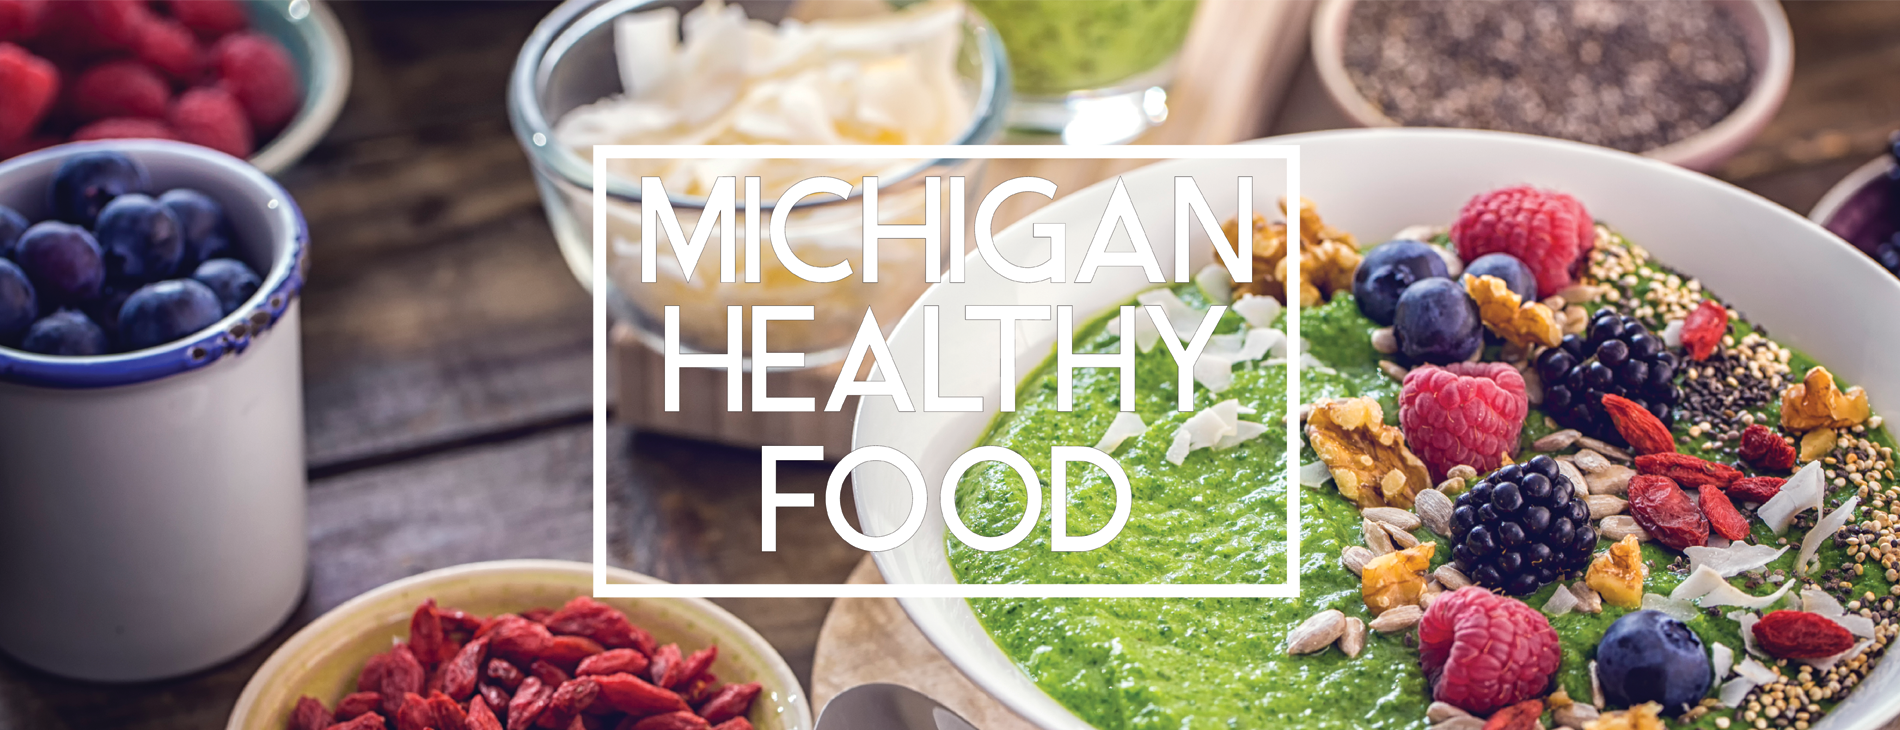 Michigan Healthy Food About Us